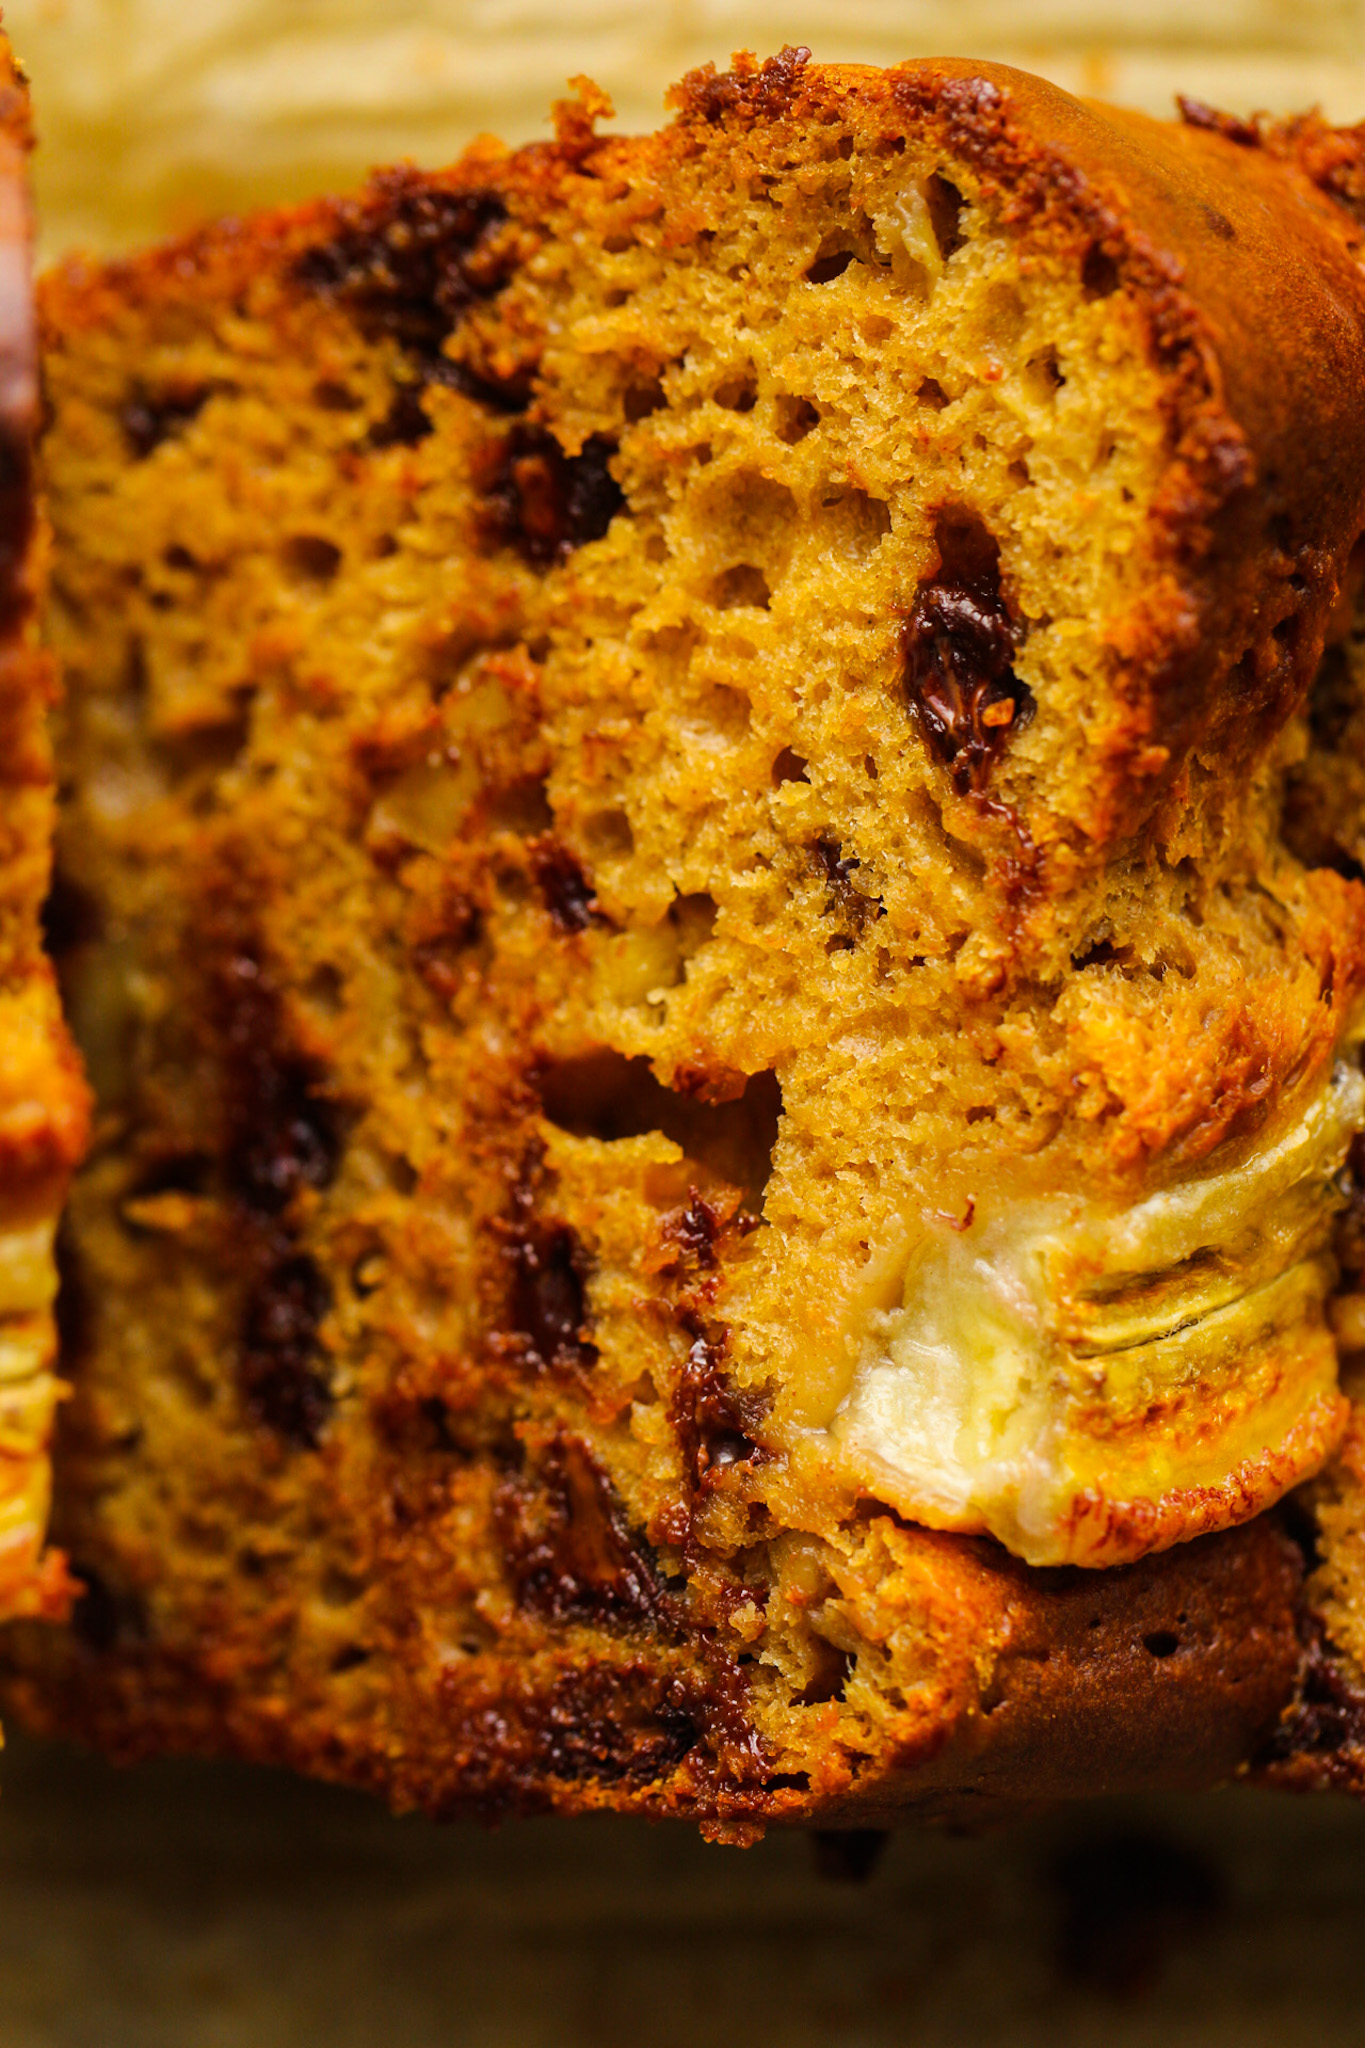 banana bread close up